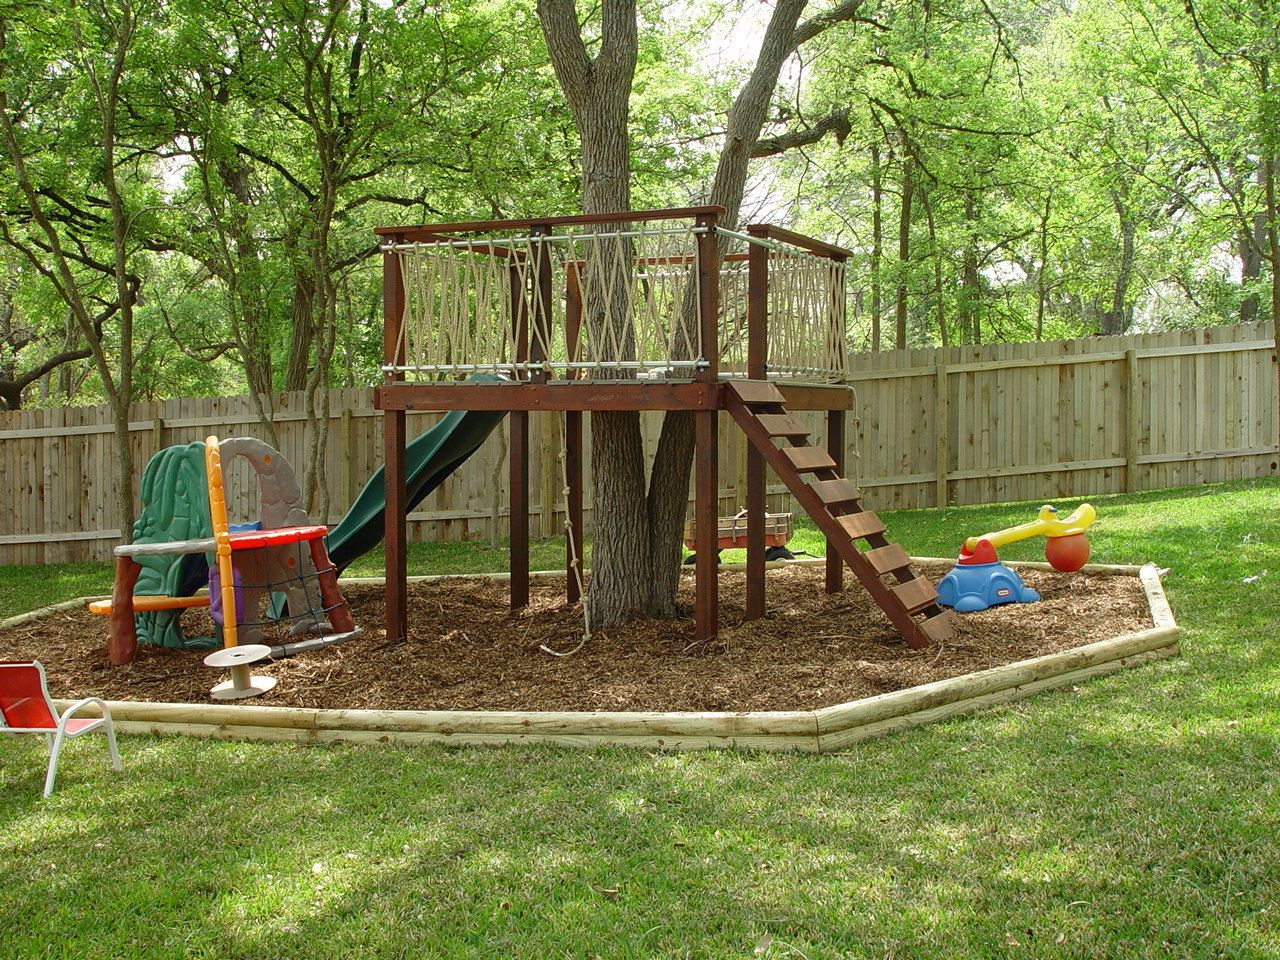 Trying to find an easy but cool tree house to build for ...